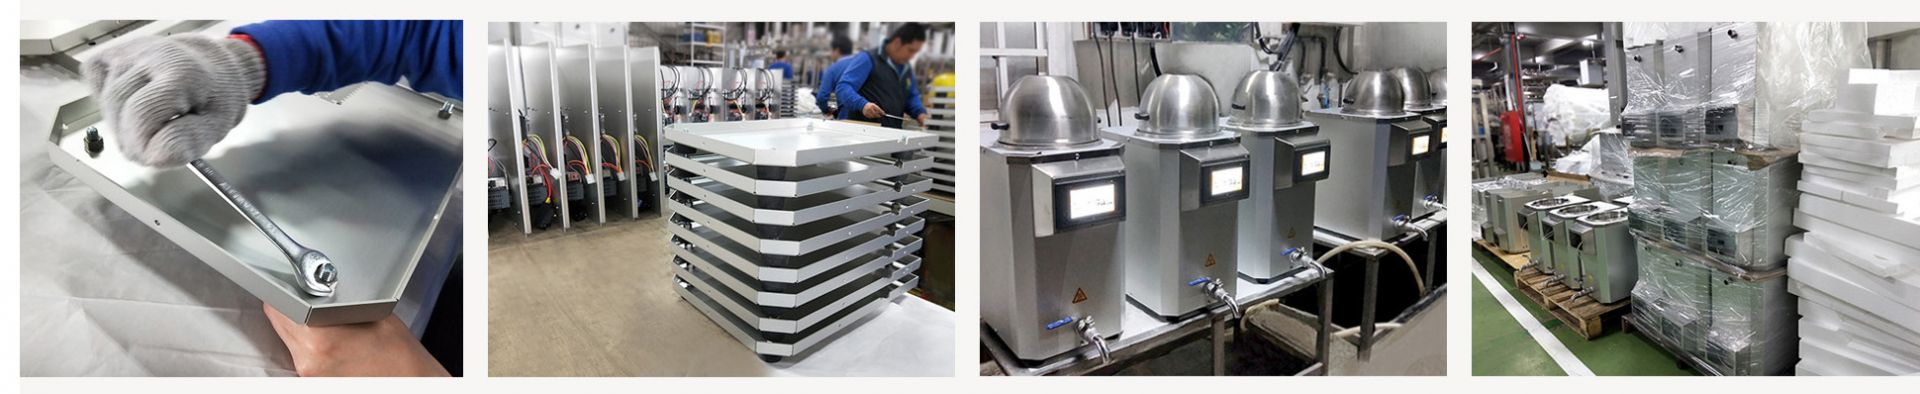 Smart Cooker packaging process